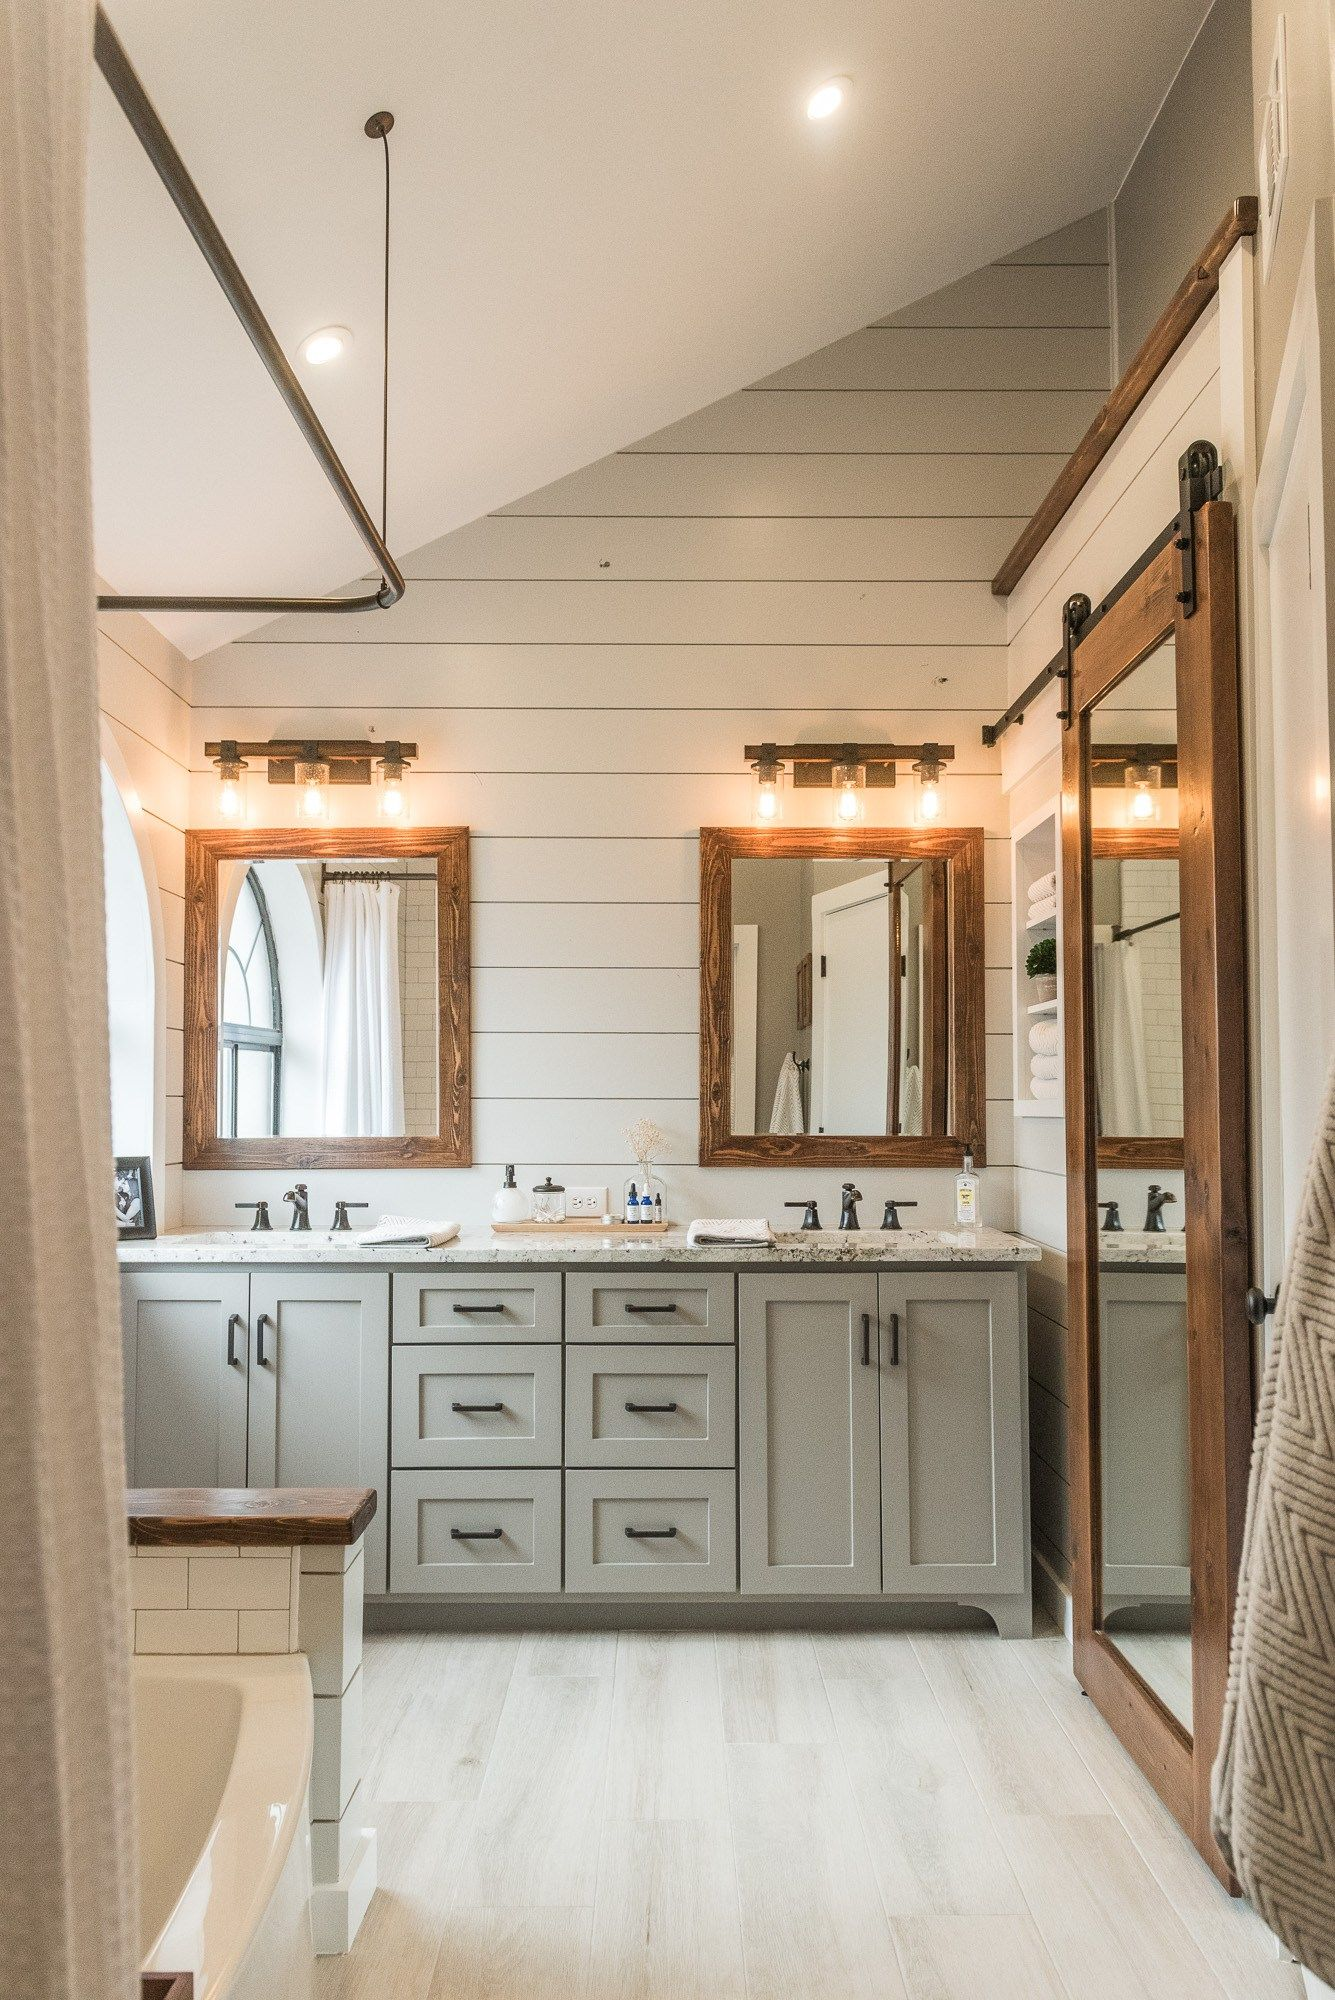 Modern Farmhouse Bathroom Inspiration | Bathroom Design Ideas